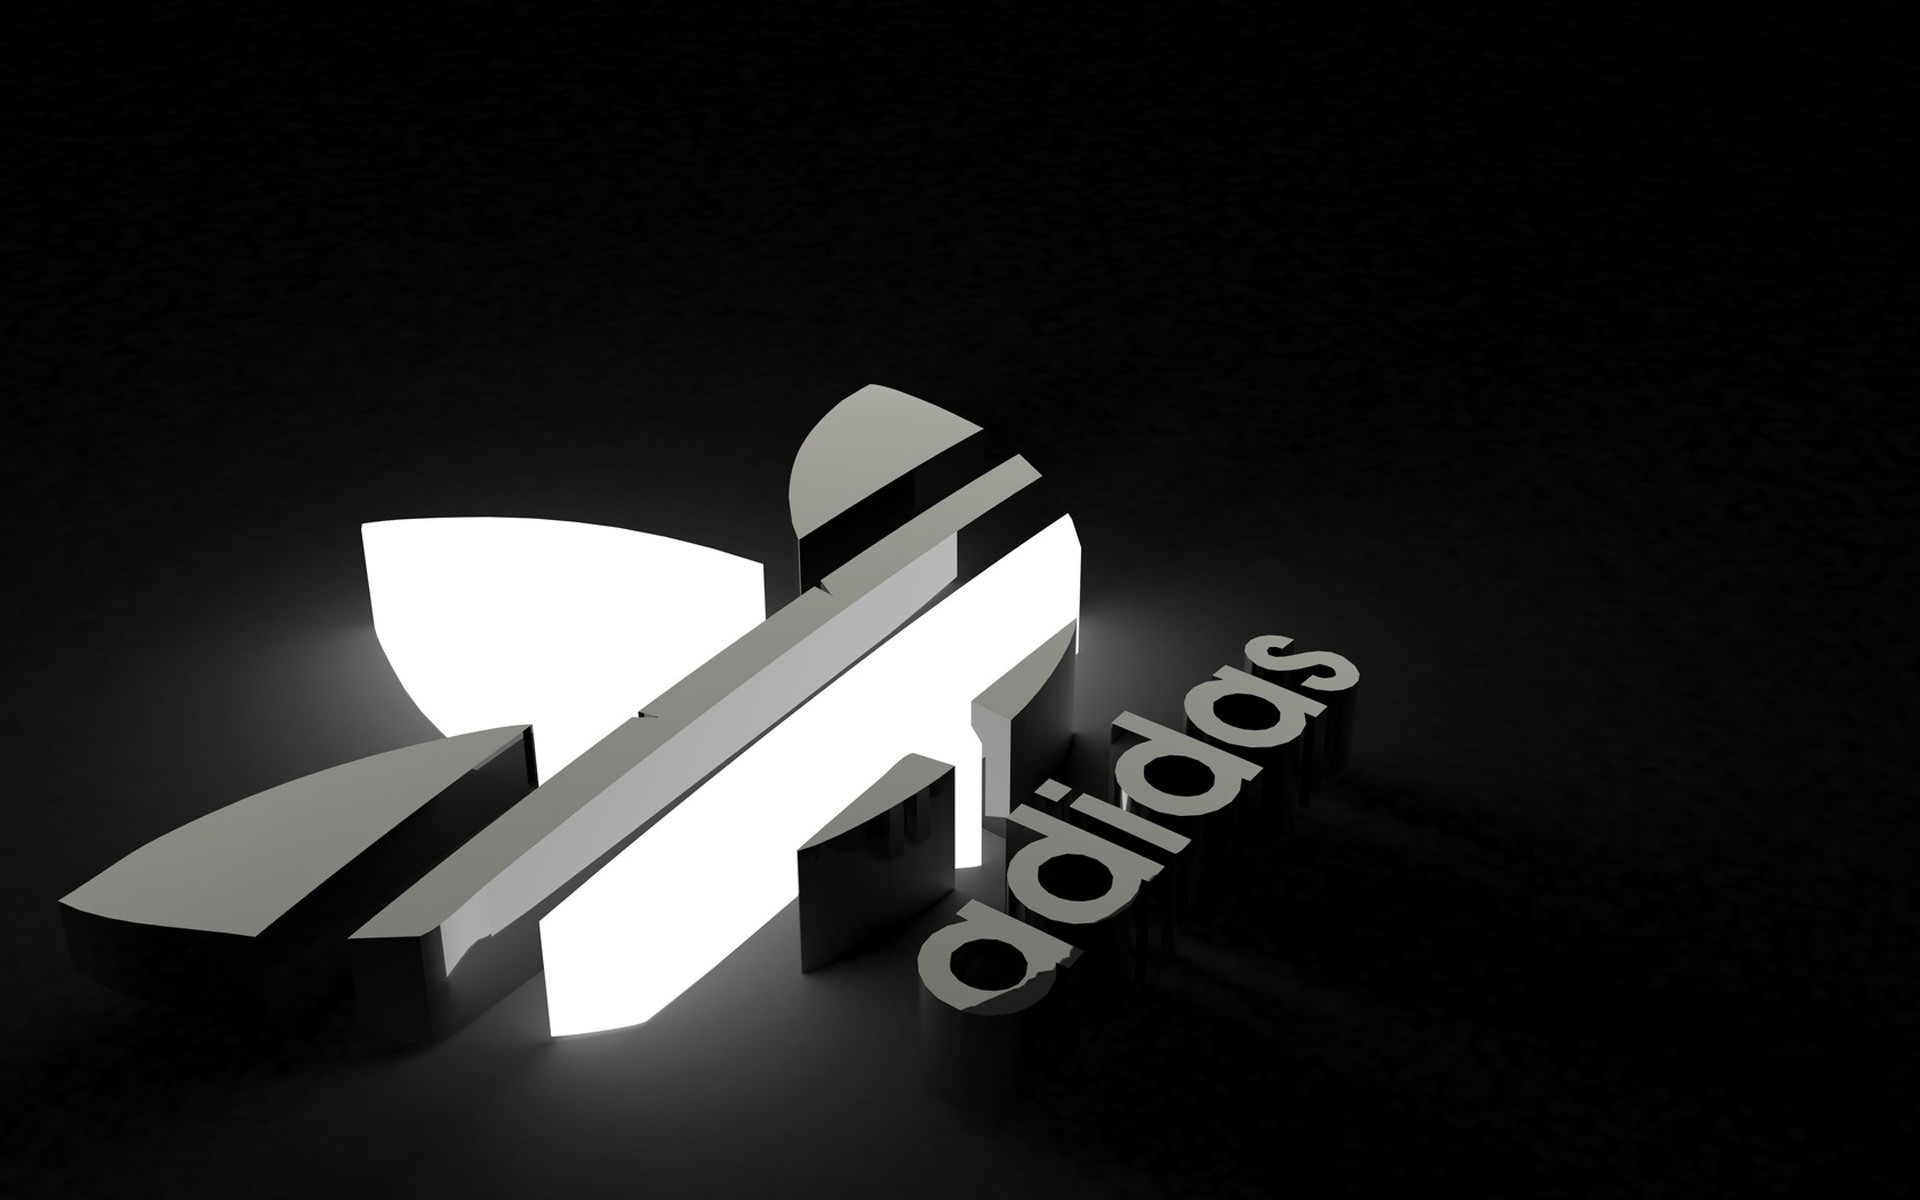 1920x1200 New HD Adidas Light Logo Wallpaper